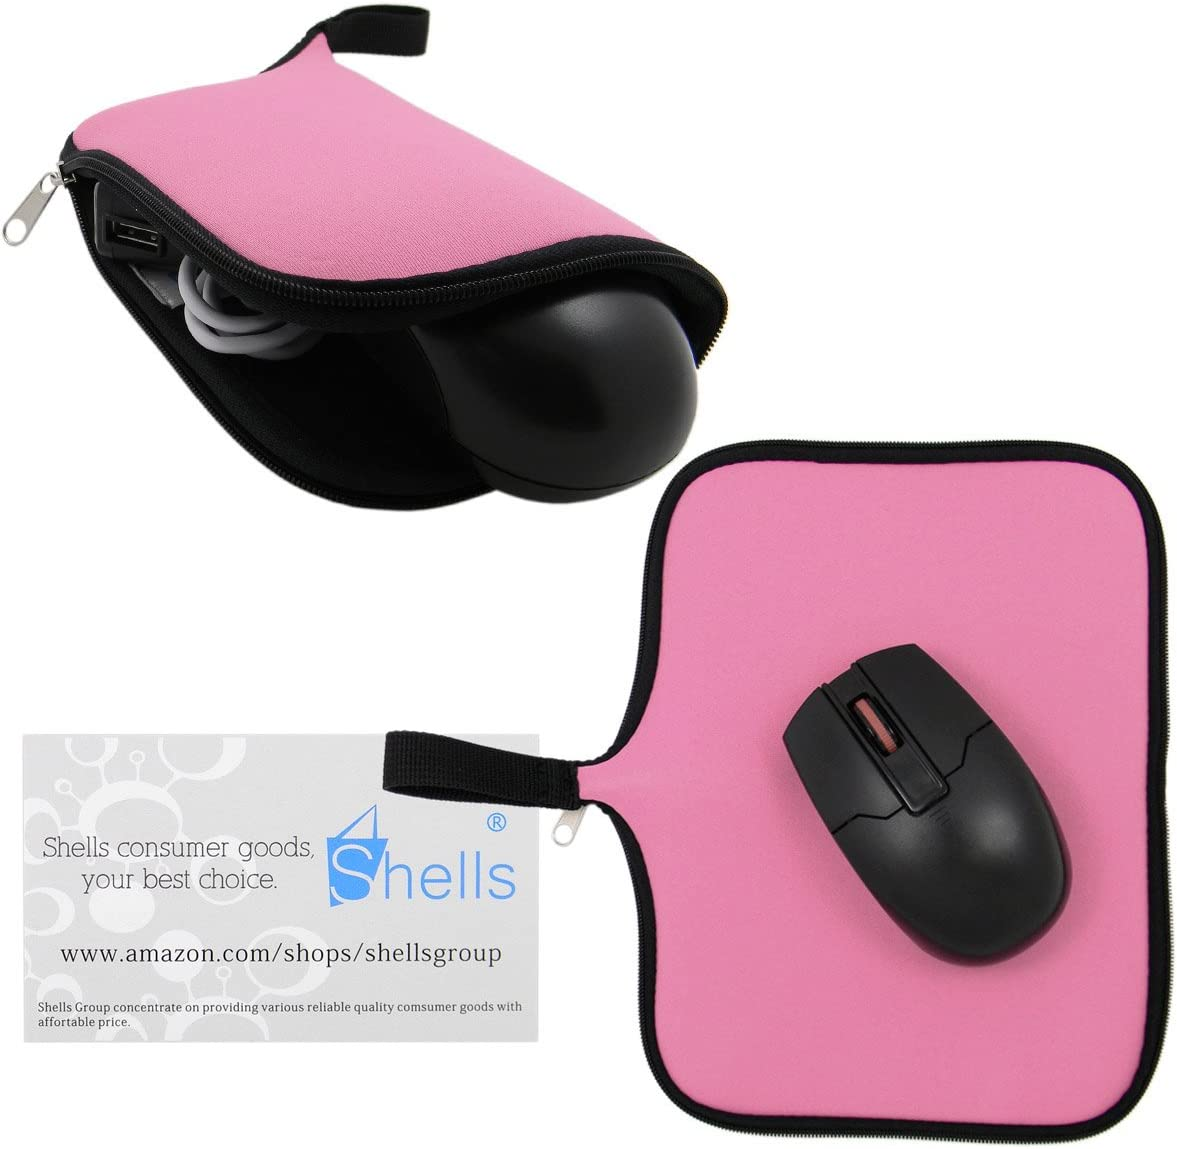 Shells Hot Pink Color A3 Neoprene Soft Magic Mouse Bag Multi-functional Digital Bag Waterproof Speed Mouse Pad